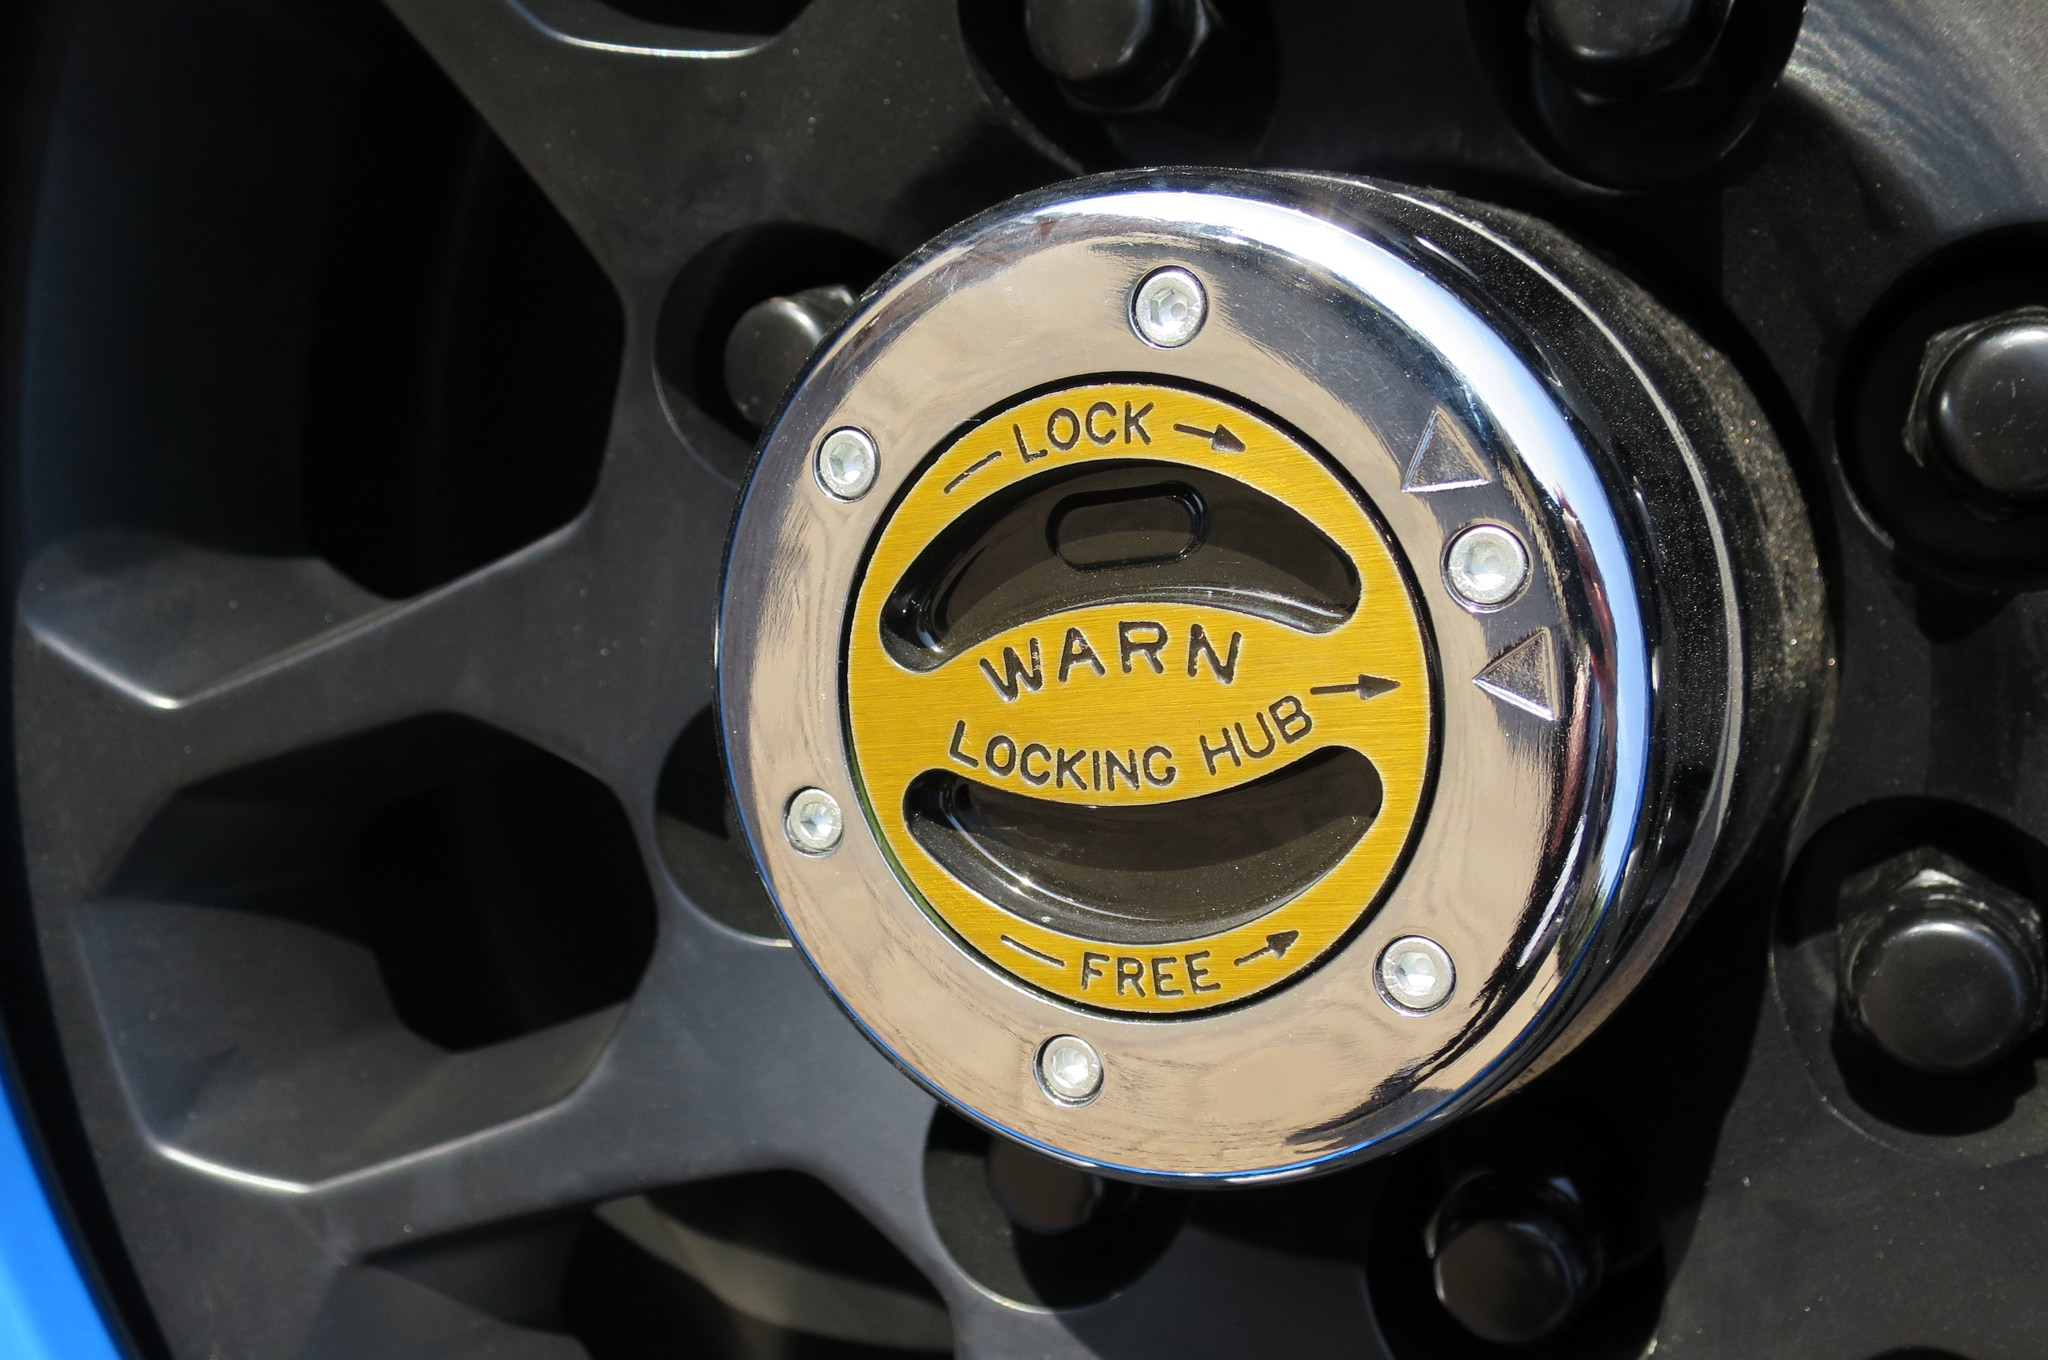 Jeep Wrangler Maximum Performance Concept hub lock